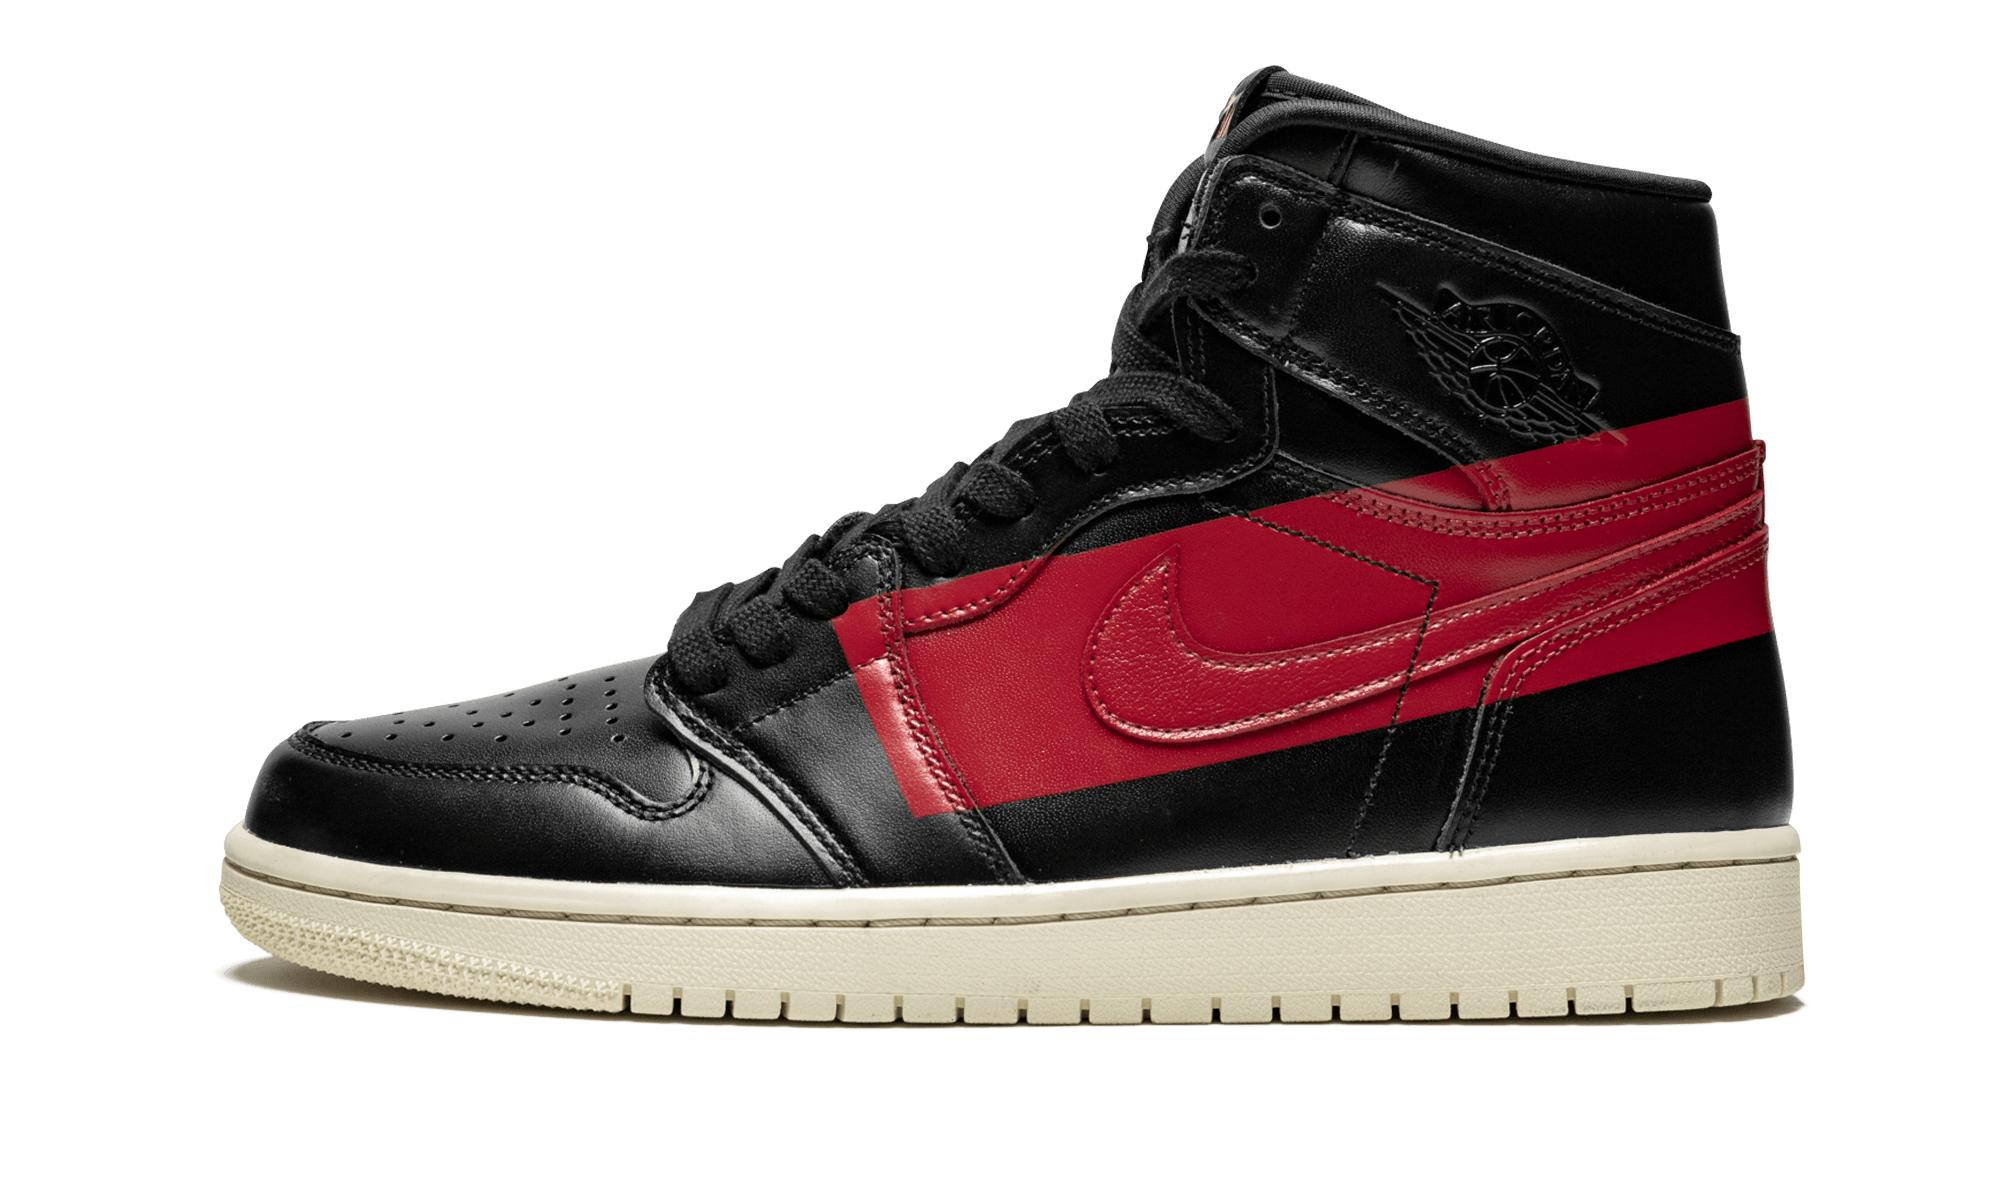 meet e1b36 cdfb4 Nike - Black Air Jordan 1 High Og Defiant for Men - Lyst. View fullscreen